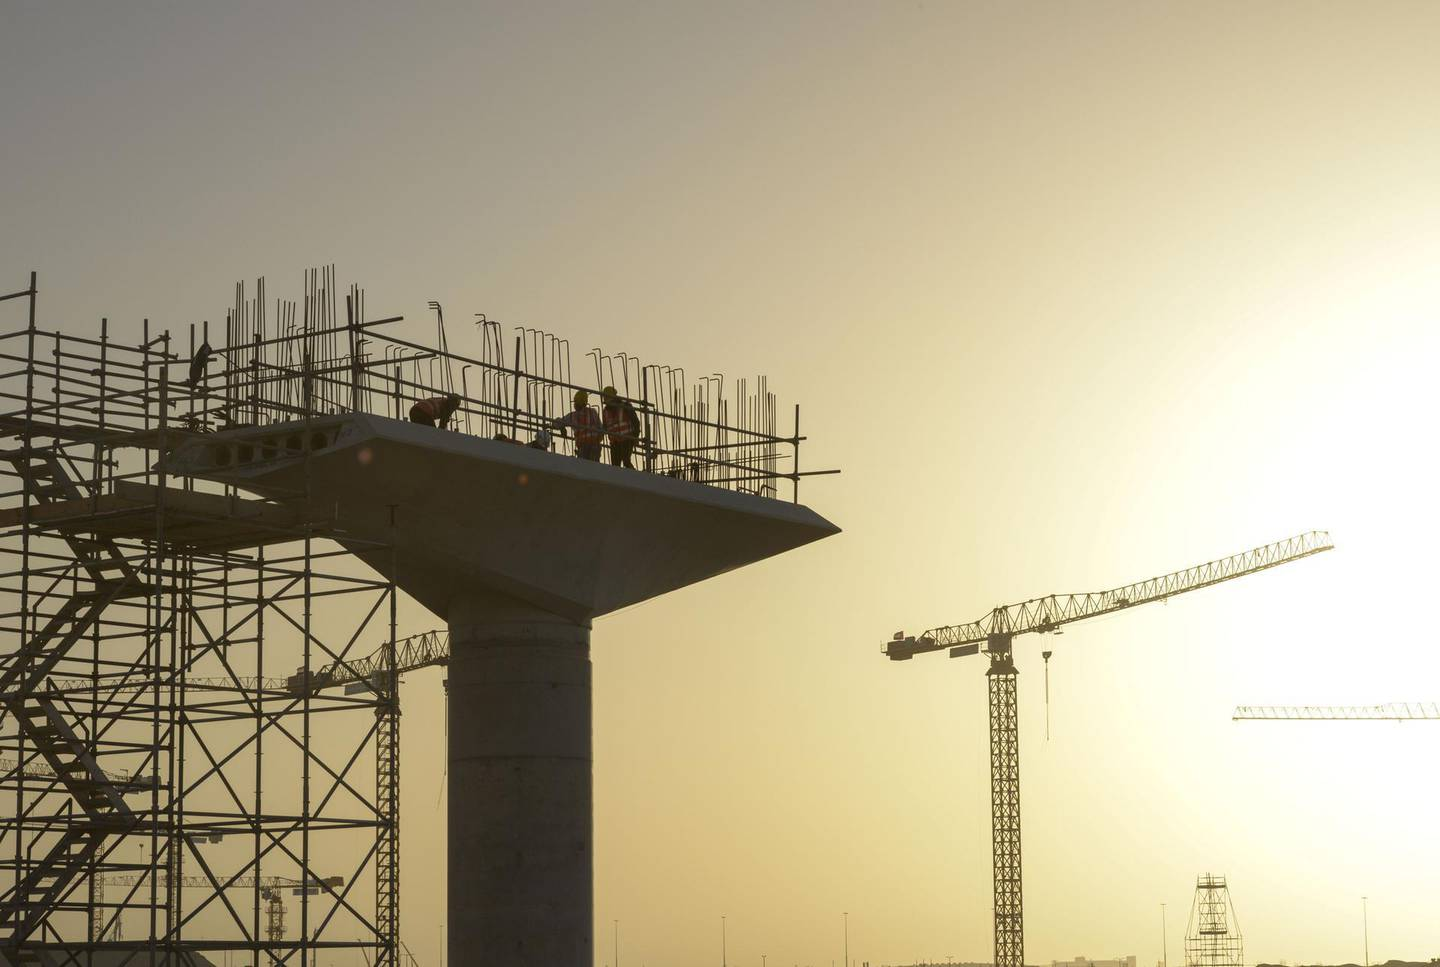 Construction workers stand on a concrete supporting structure for the new metro rail link to the city at the building site for the World Expo 2020 exhibition in Dubai, United Arab Emirates, on Tuesday, Jan. 23, 2018. Much of the Arab world is mired in violence, poverty and unemployment, and yet in Dubai they���re��busy working on sending a probe to the red planet within three years. Photographer: Khushnum��Bhandari/Bloomberg